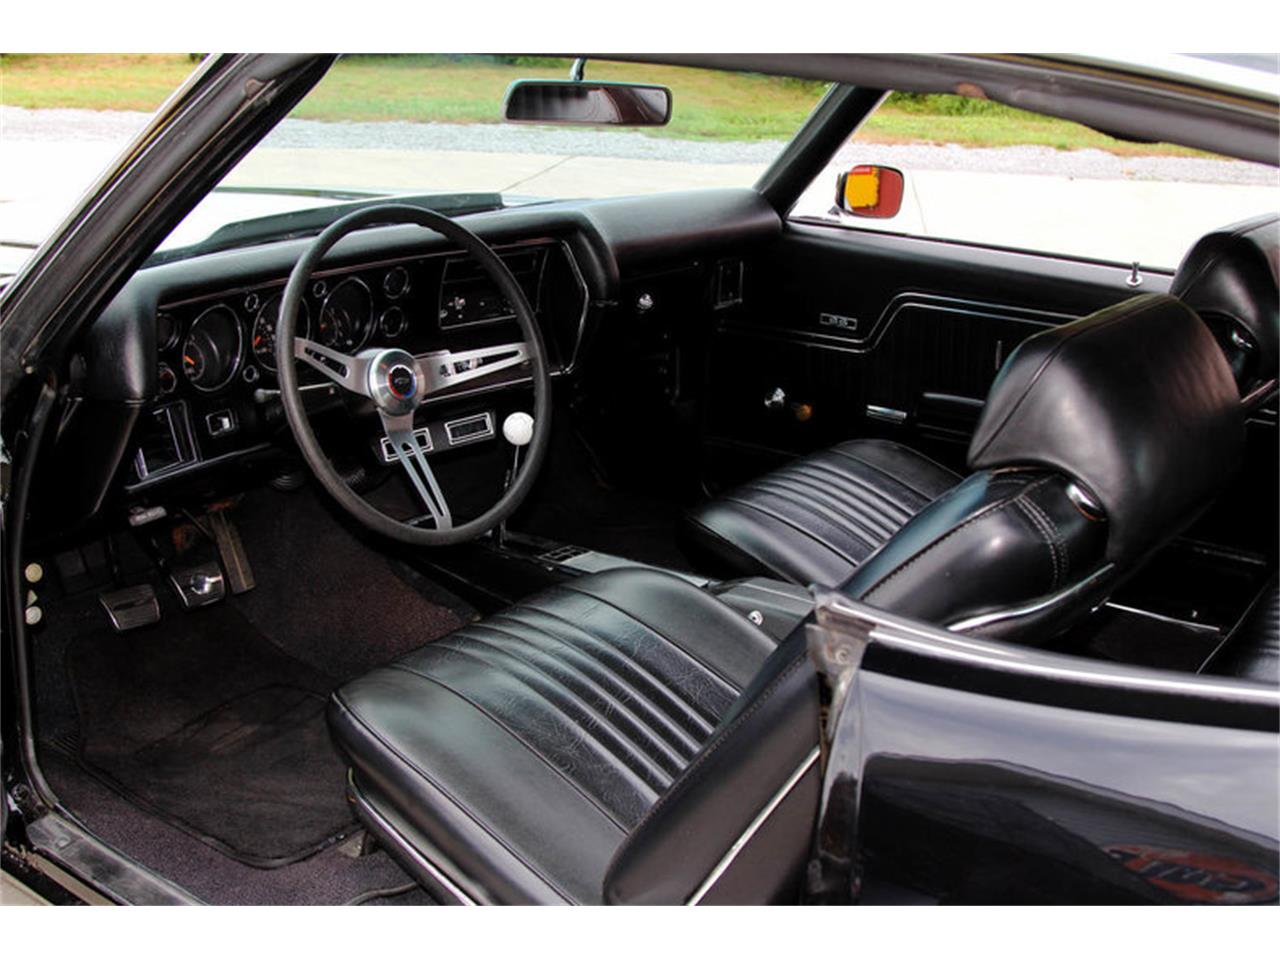 Large Picture of '72 Chevrolet Chevelle located in Tennessee Offered by Smoky Mountain Traders - NRB6